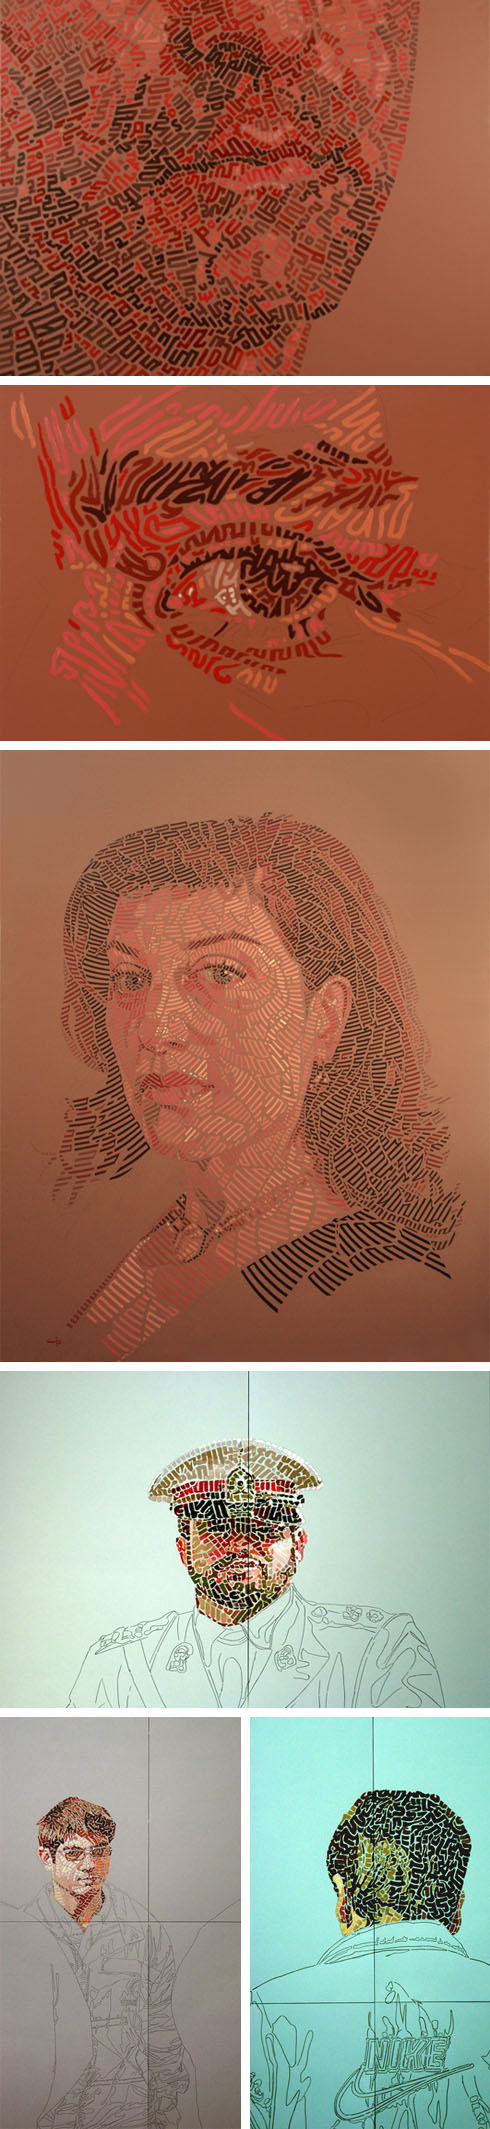 oil and pencil paintings, portraits, Persian Calligraphy, dissolution, figurative works